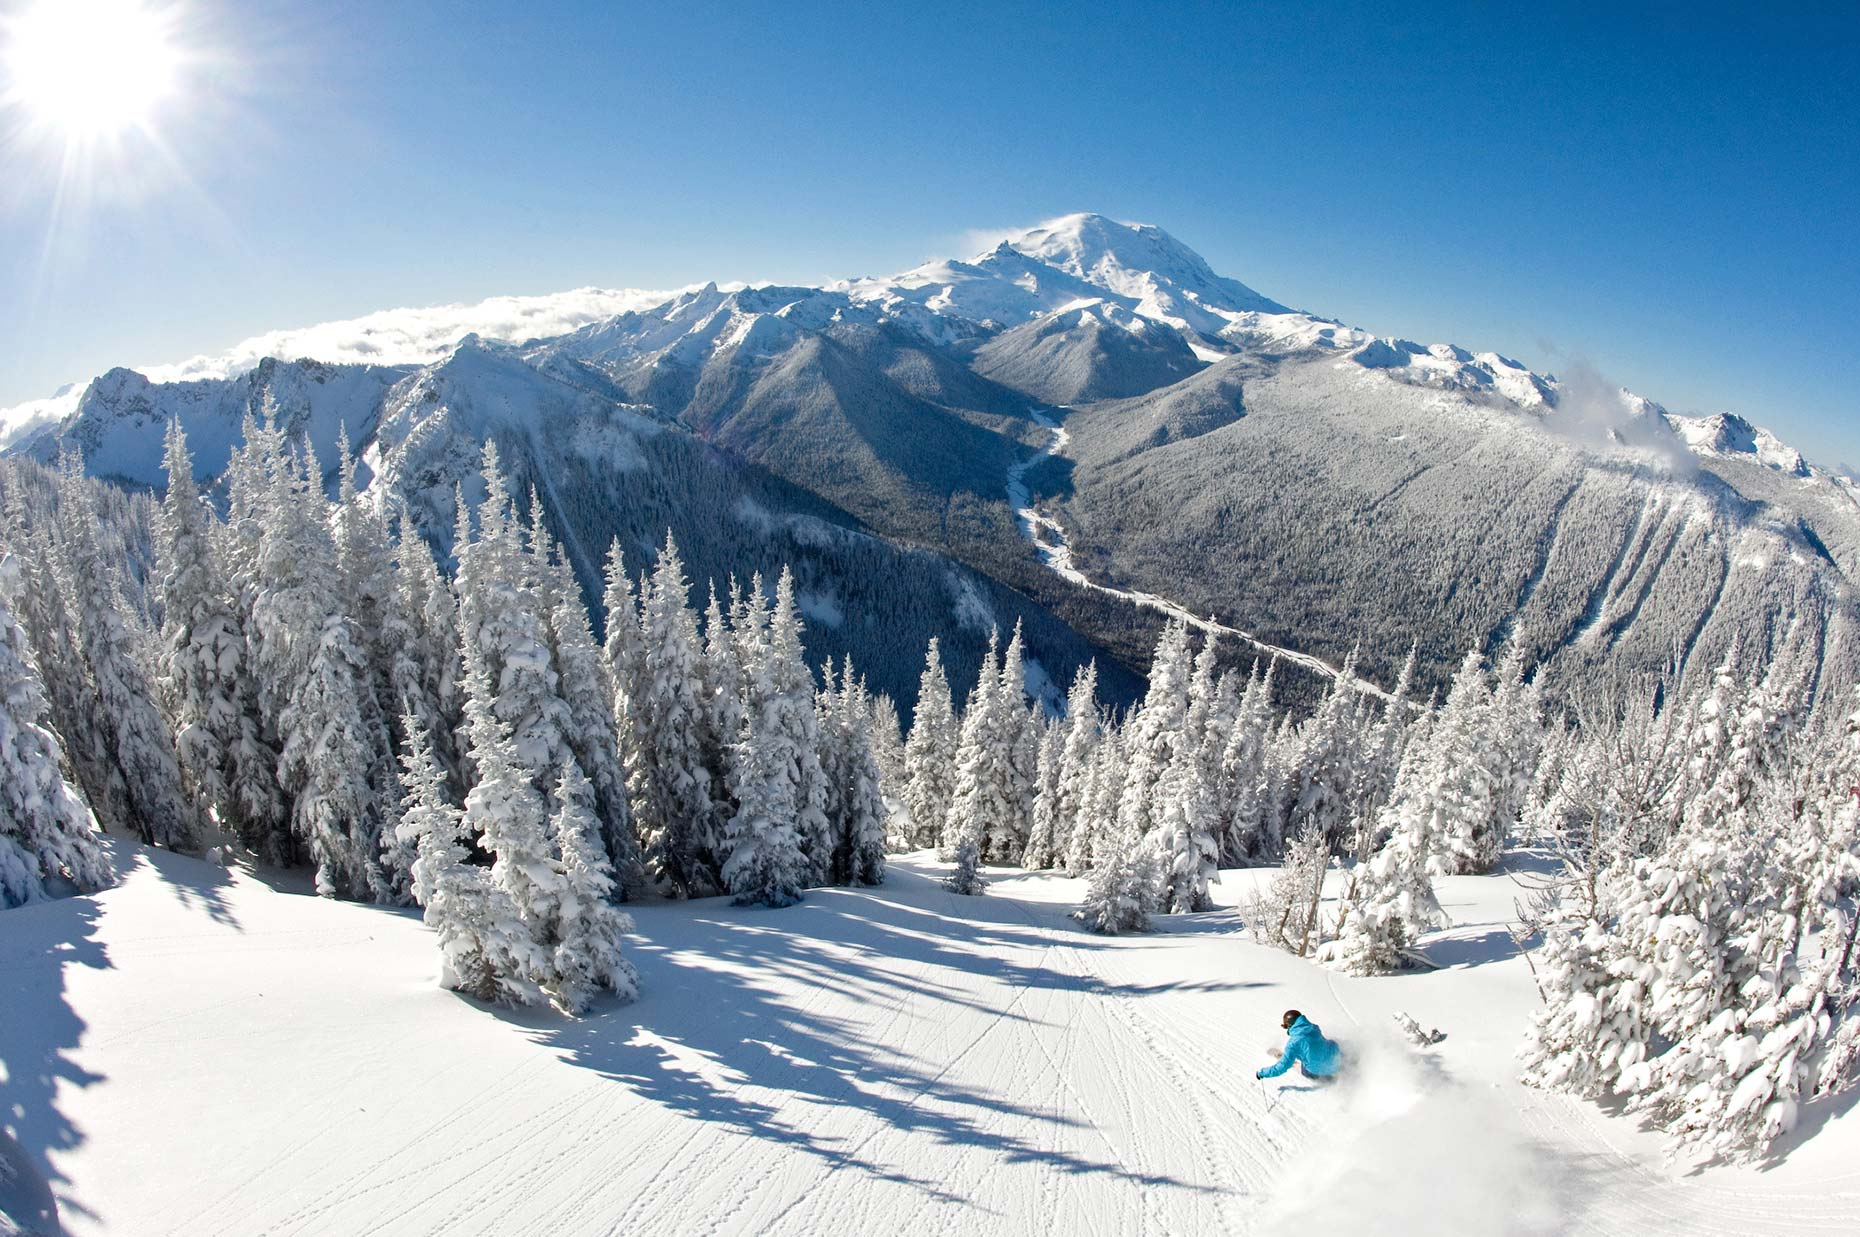 Ian-Coble-Skiing-Mt-Rainier